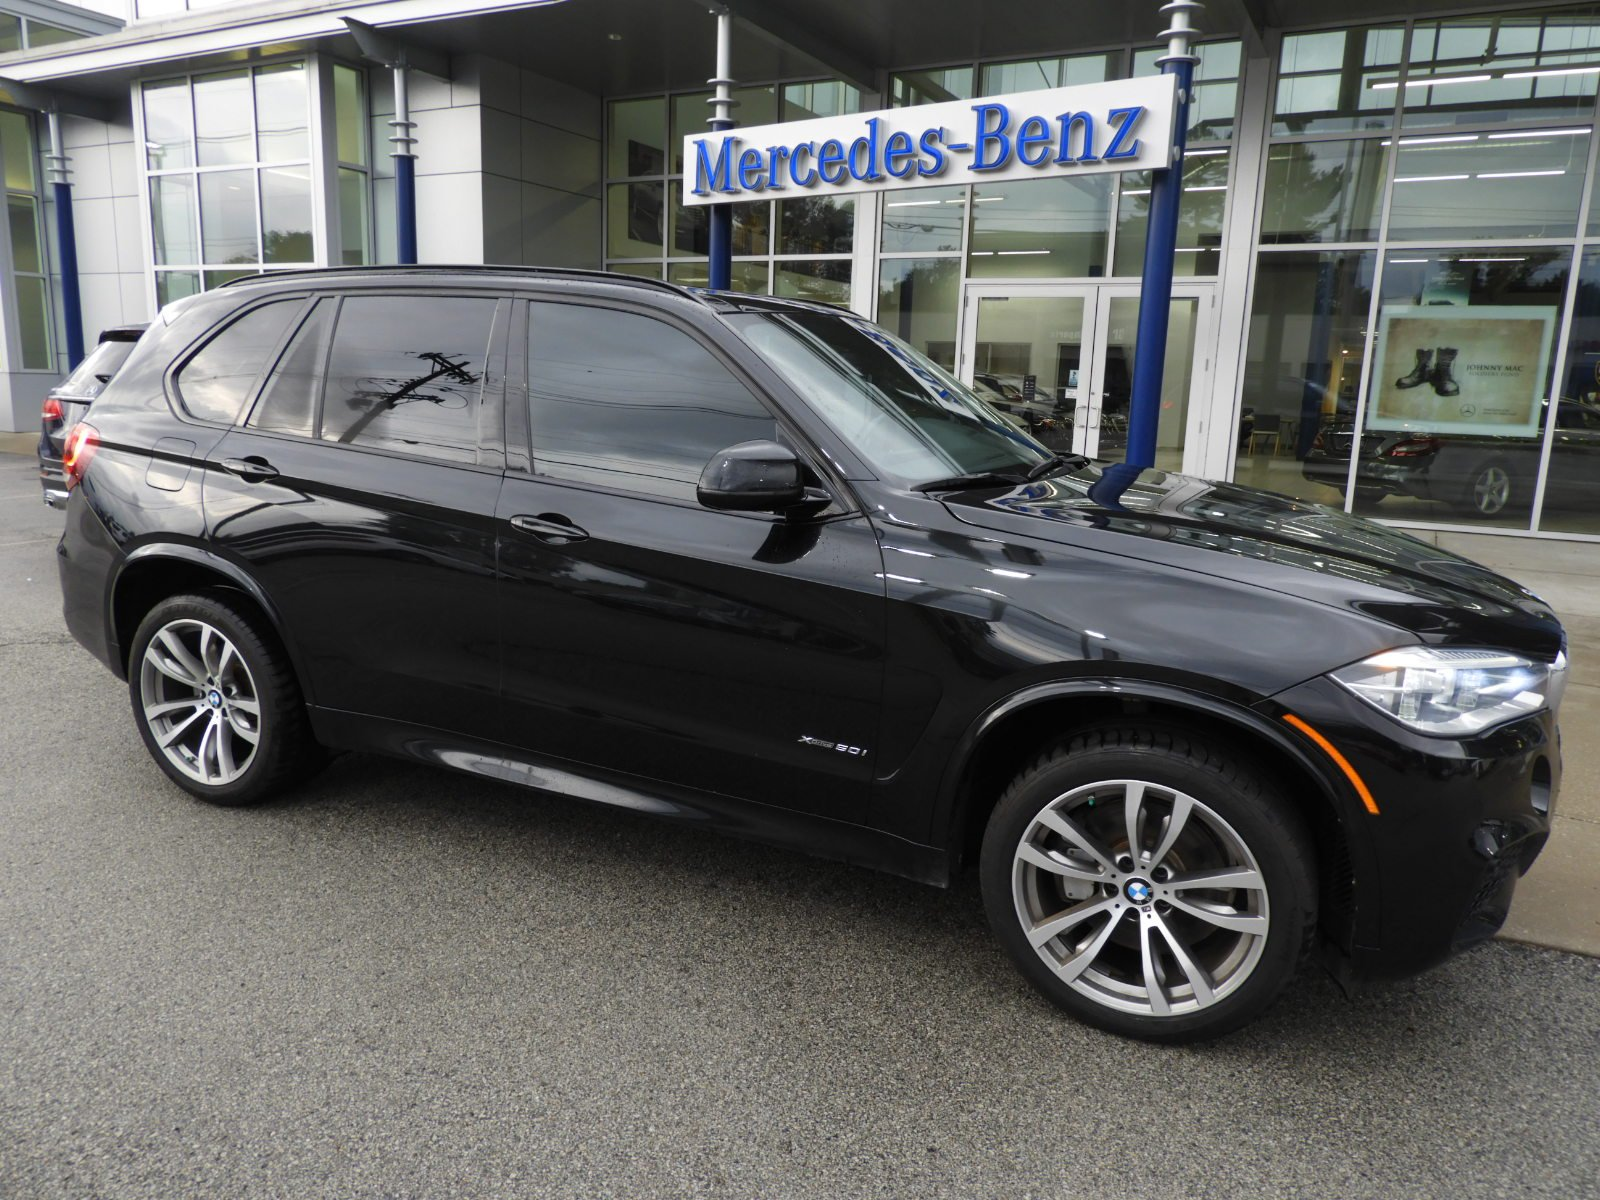 Pre Owned 2014 BMW X5 XDrive50i AWD SUV